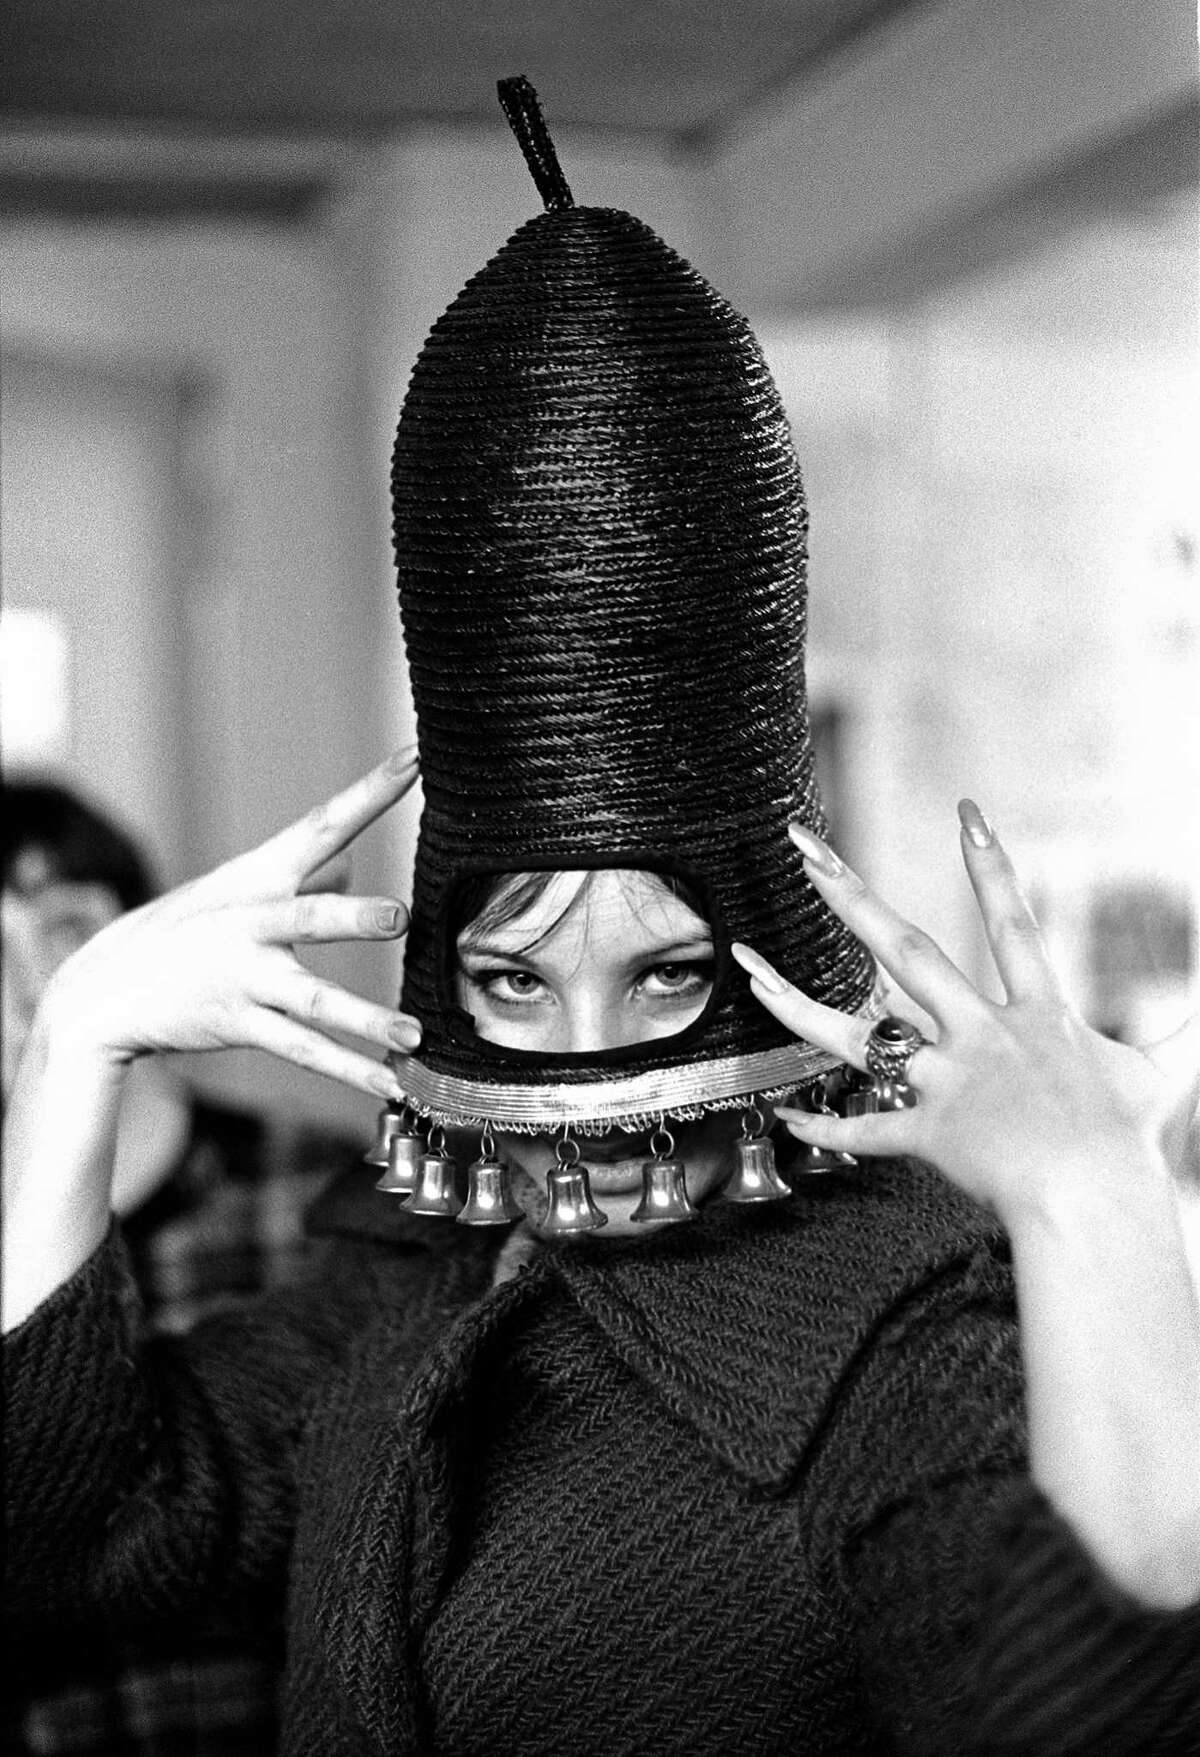 Barbra Streisand tries on hats in a thrift shop in New York City, 1963. The shop was